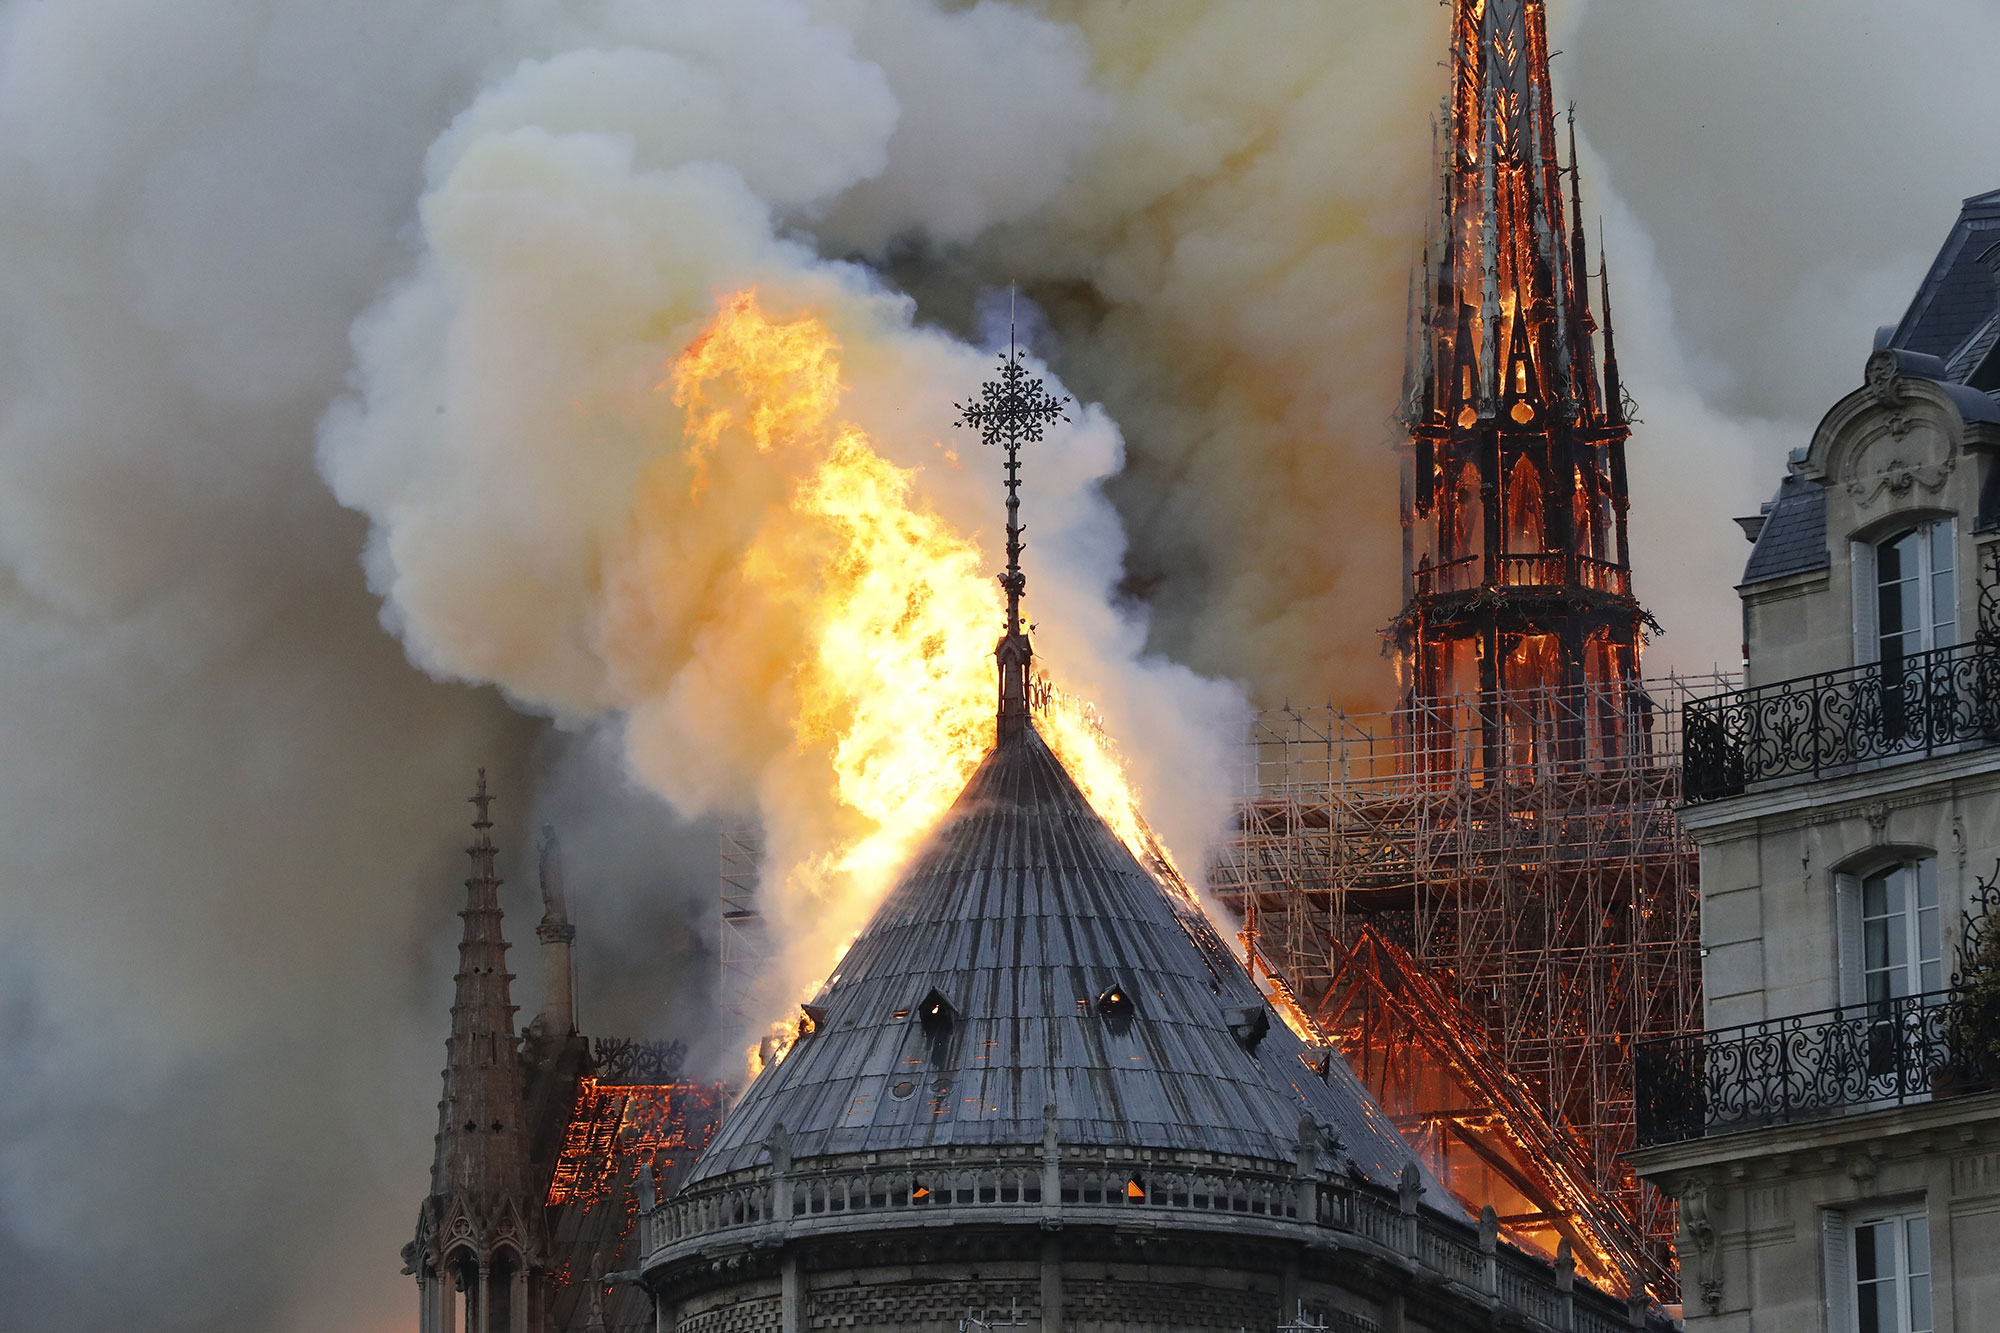 Notre Dame on Fire - Flames and smoke are seen billowing from the roof at Notre-Dame Cathedral April 15, 2019 in Paris, France.